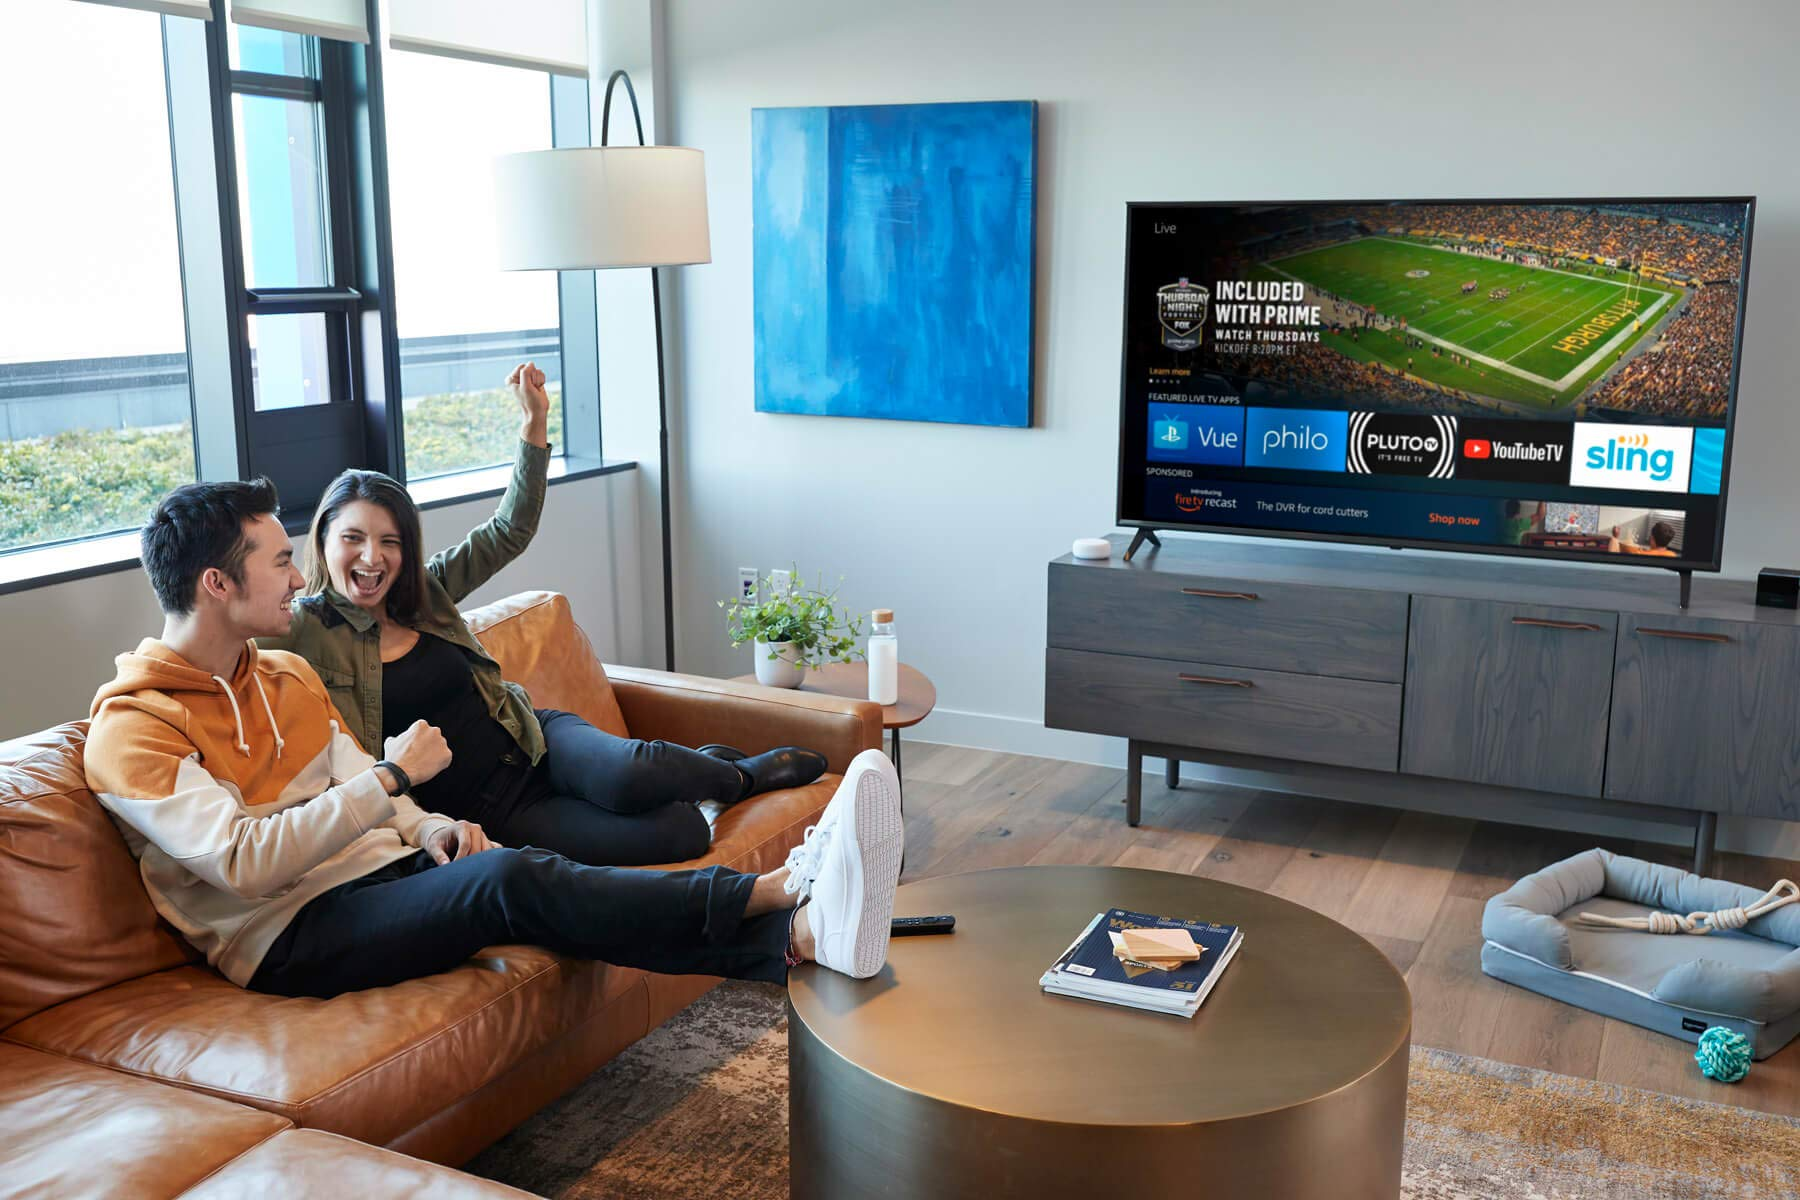 Man and woman sitting on a couch in a living room cheering in front of a TV.